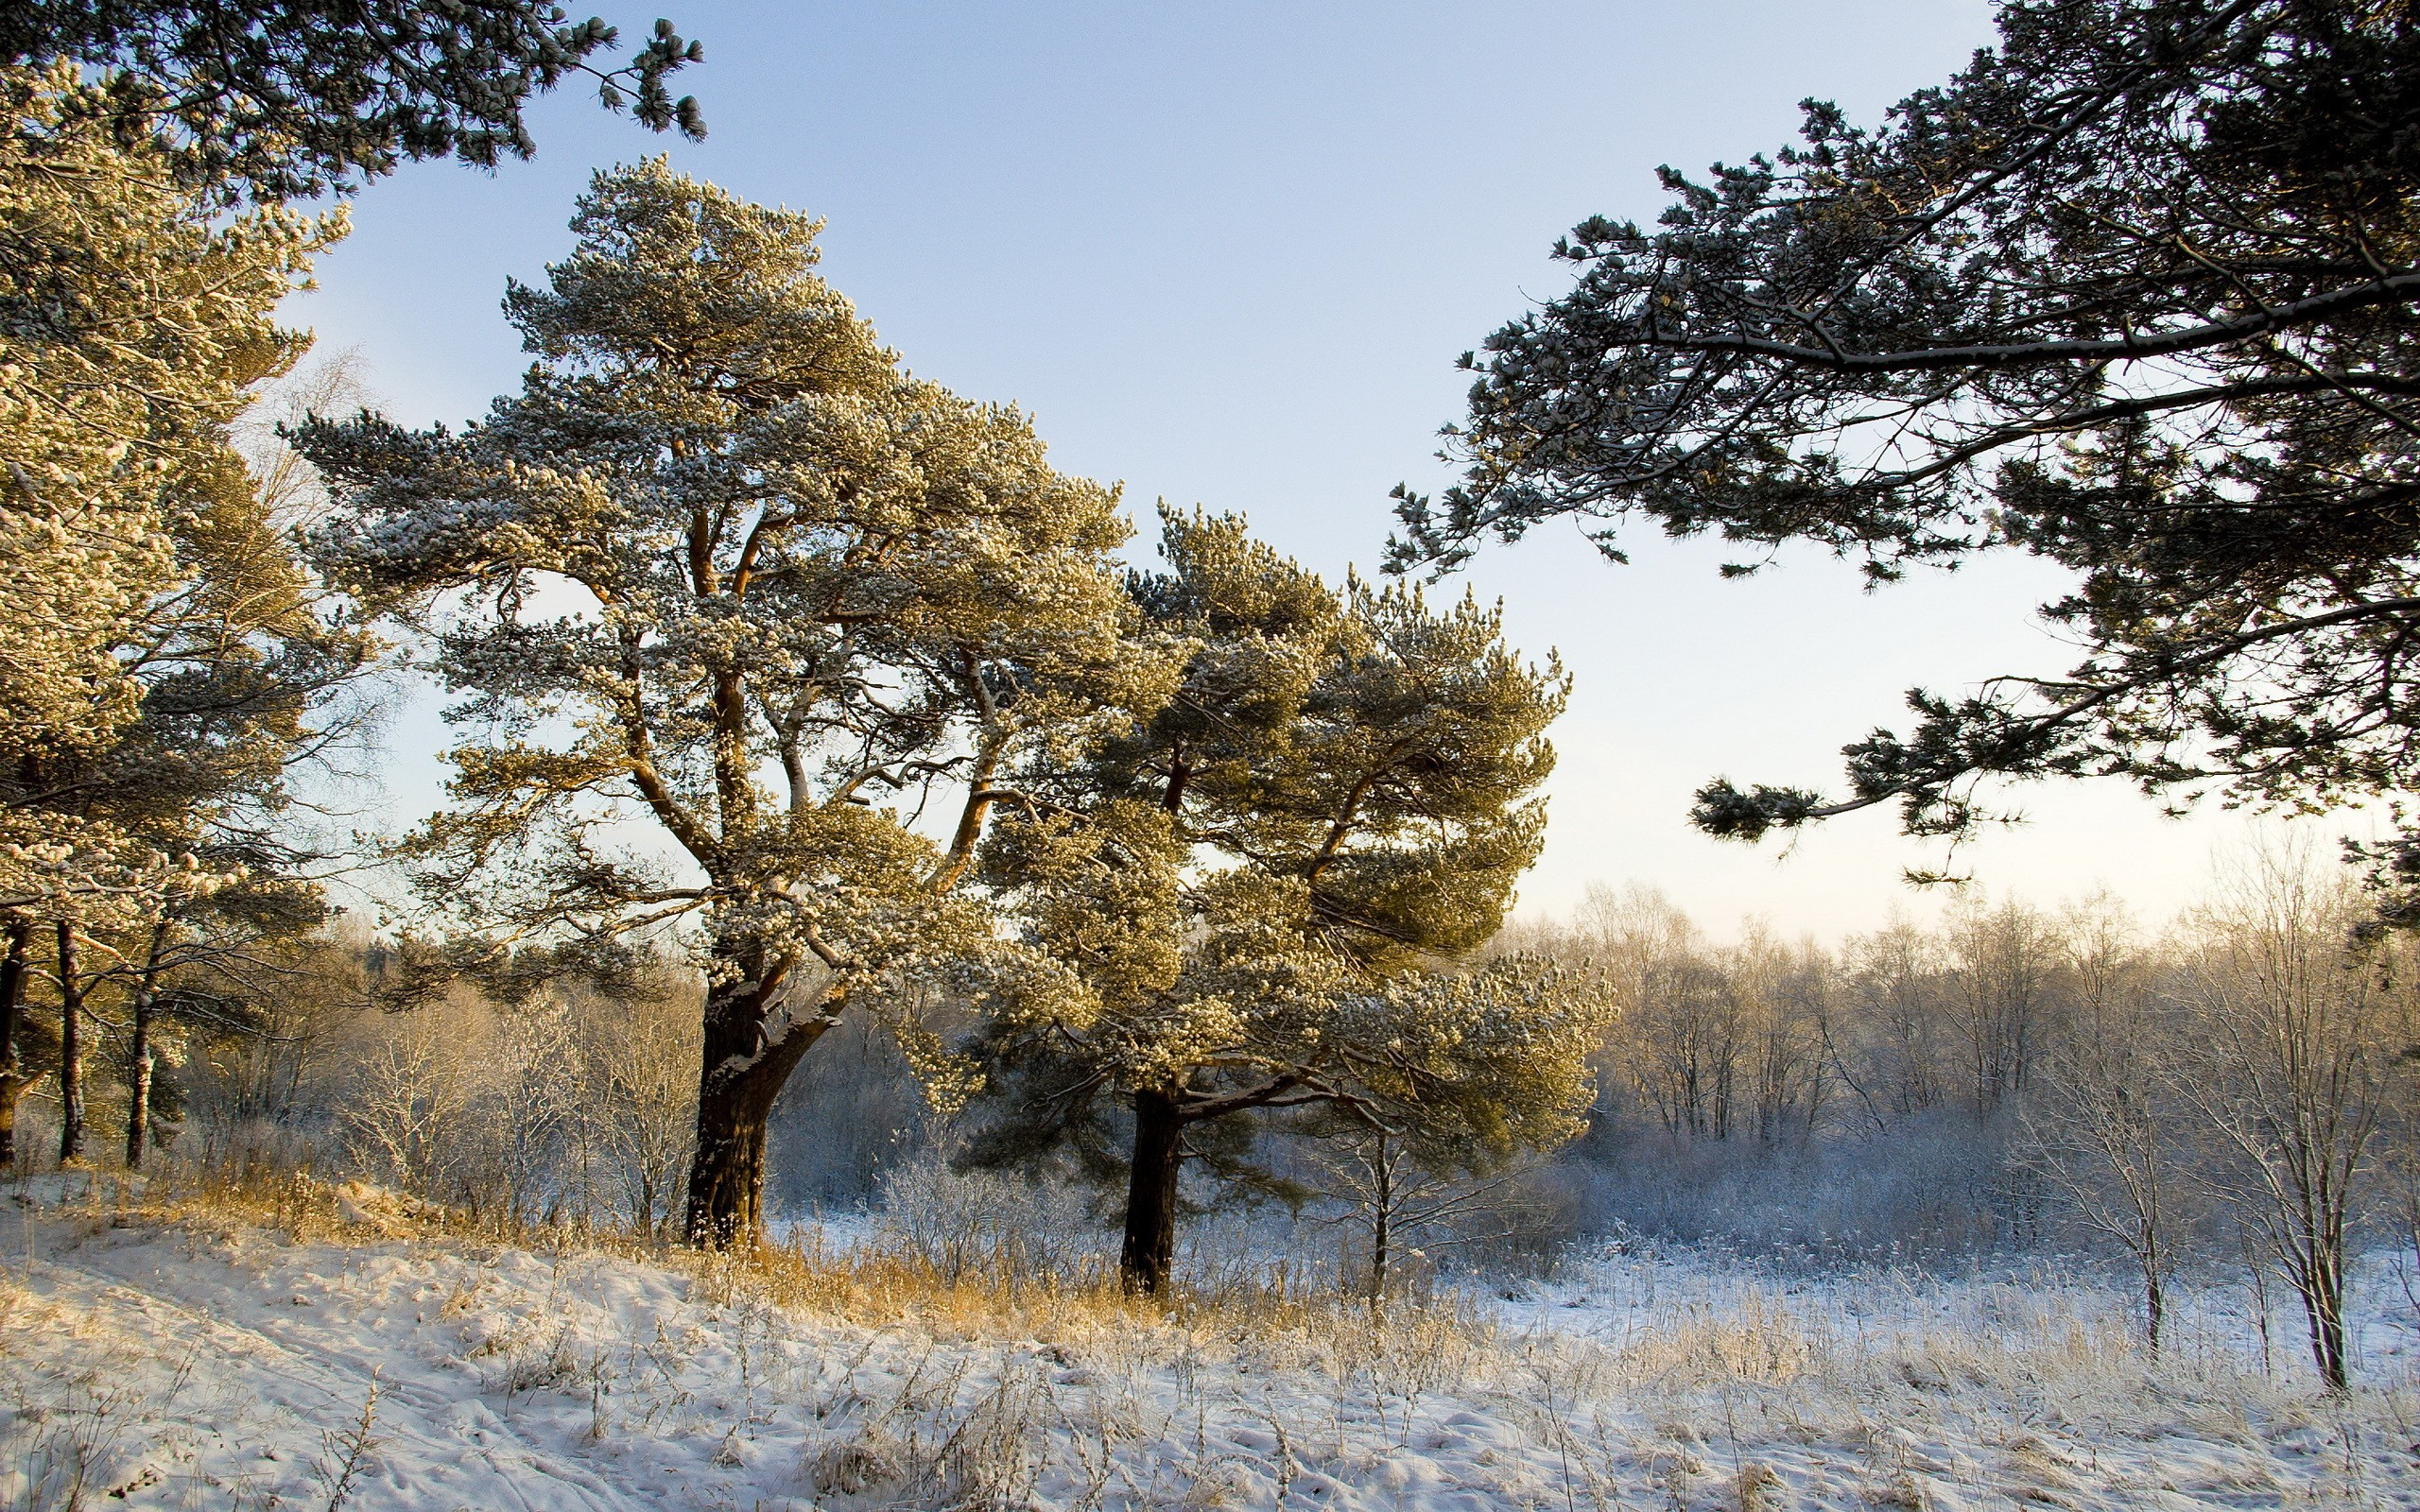 Winter pine trees wallpaper wallpapersafari - Images of pine trees in snow ...